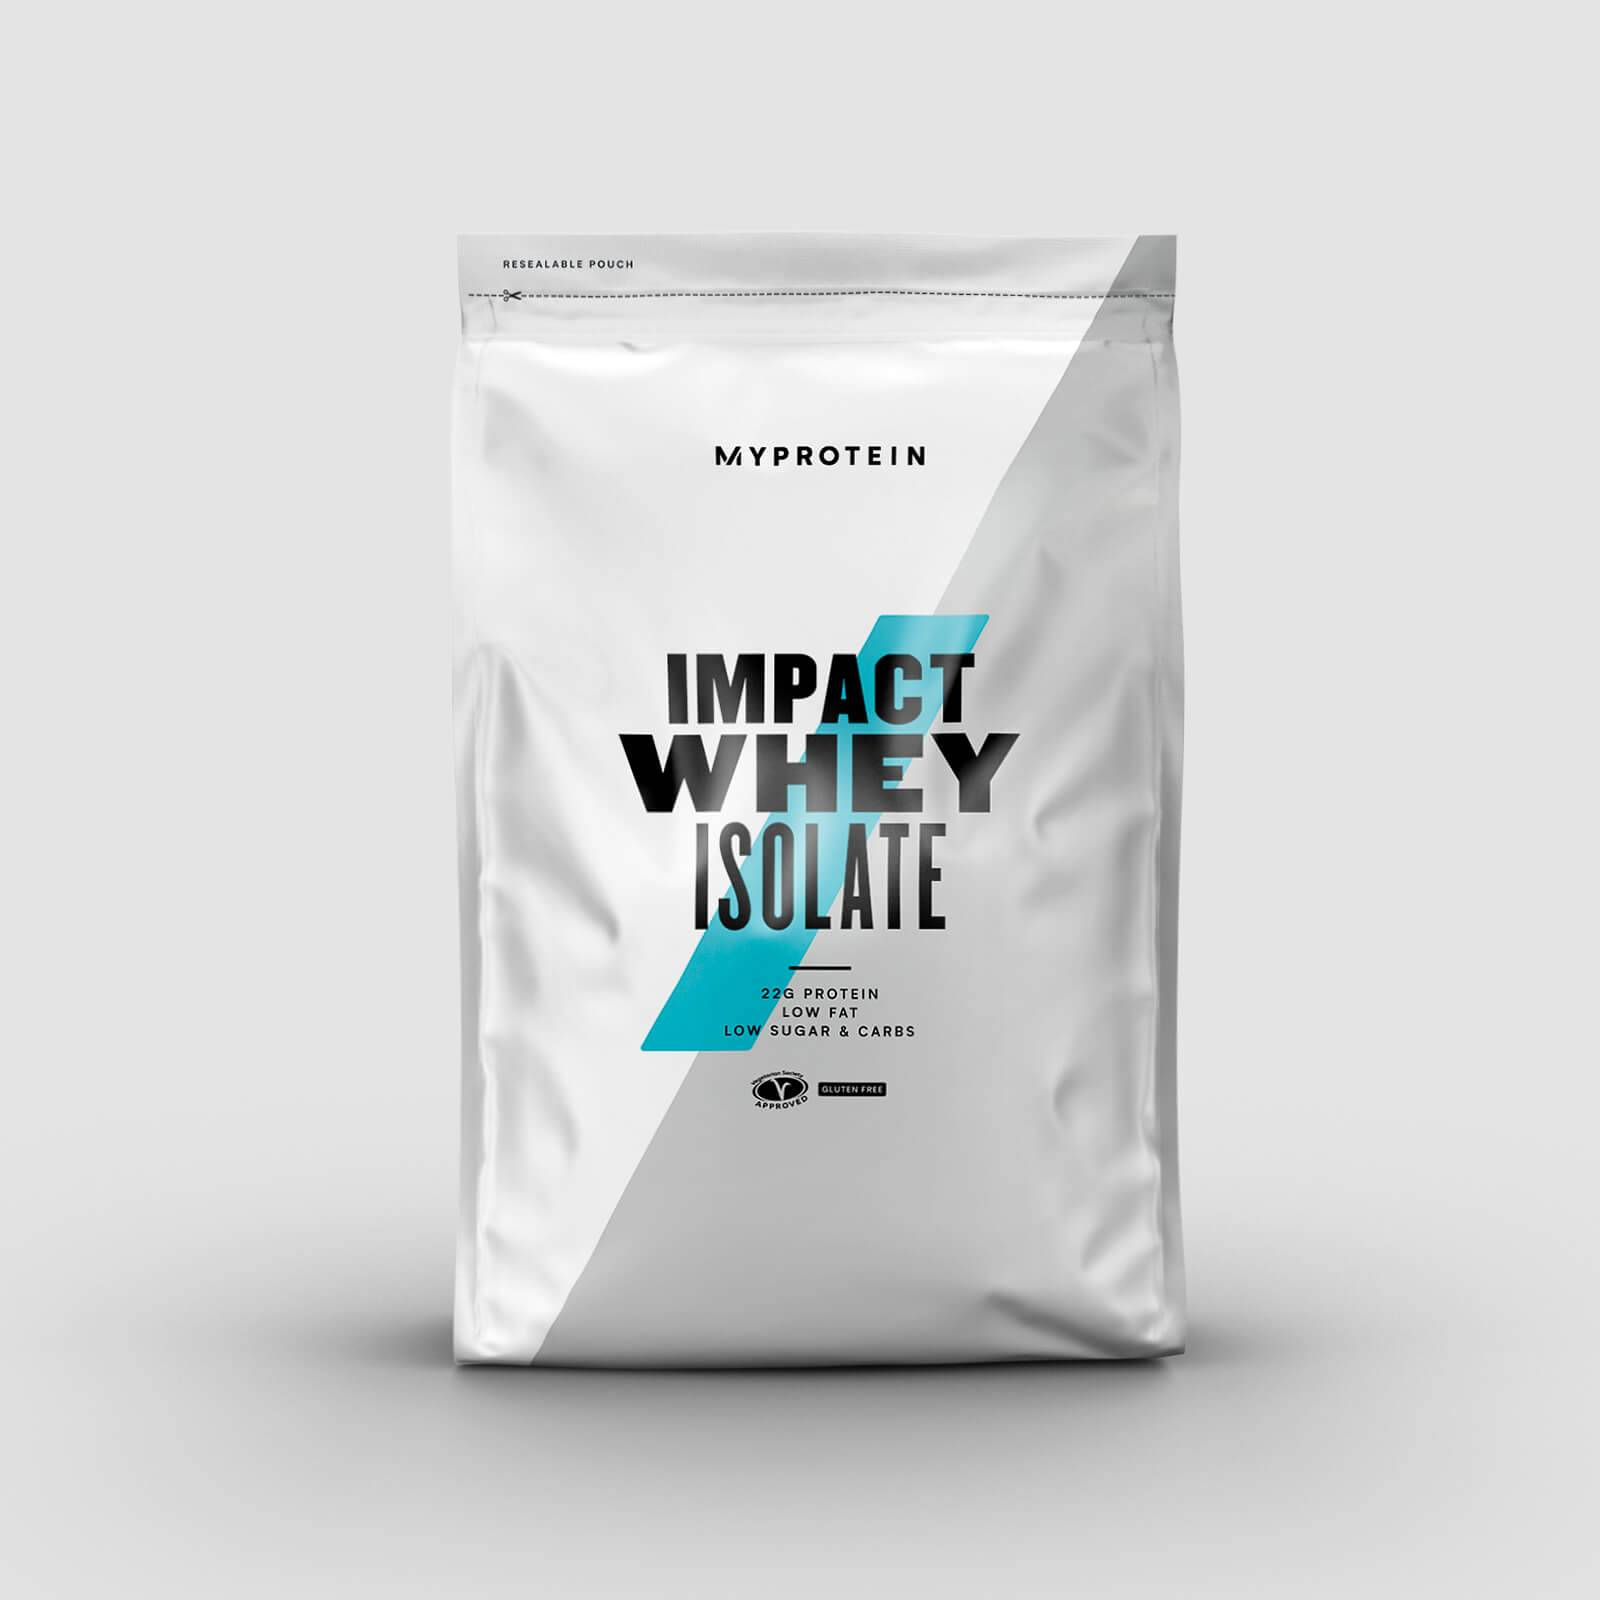 Myprotein Impact Whey Isolate - 2.5kg - Menthe chocolat